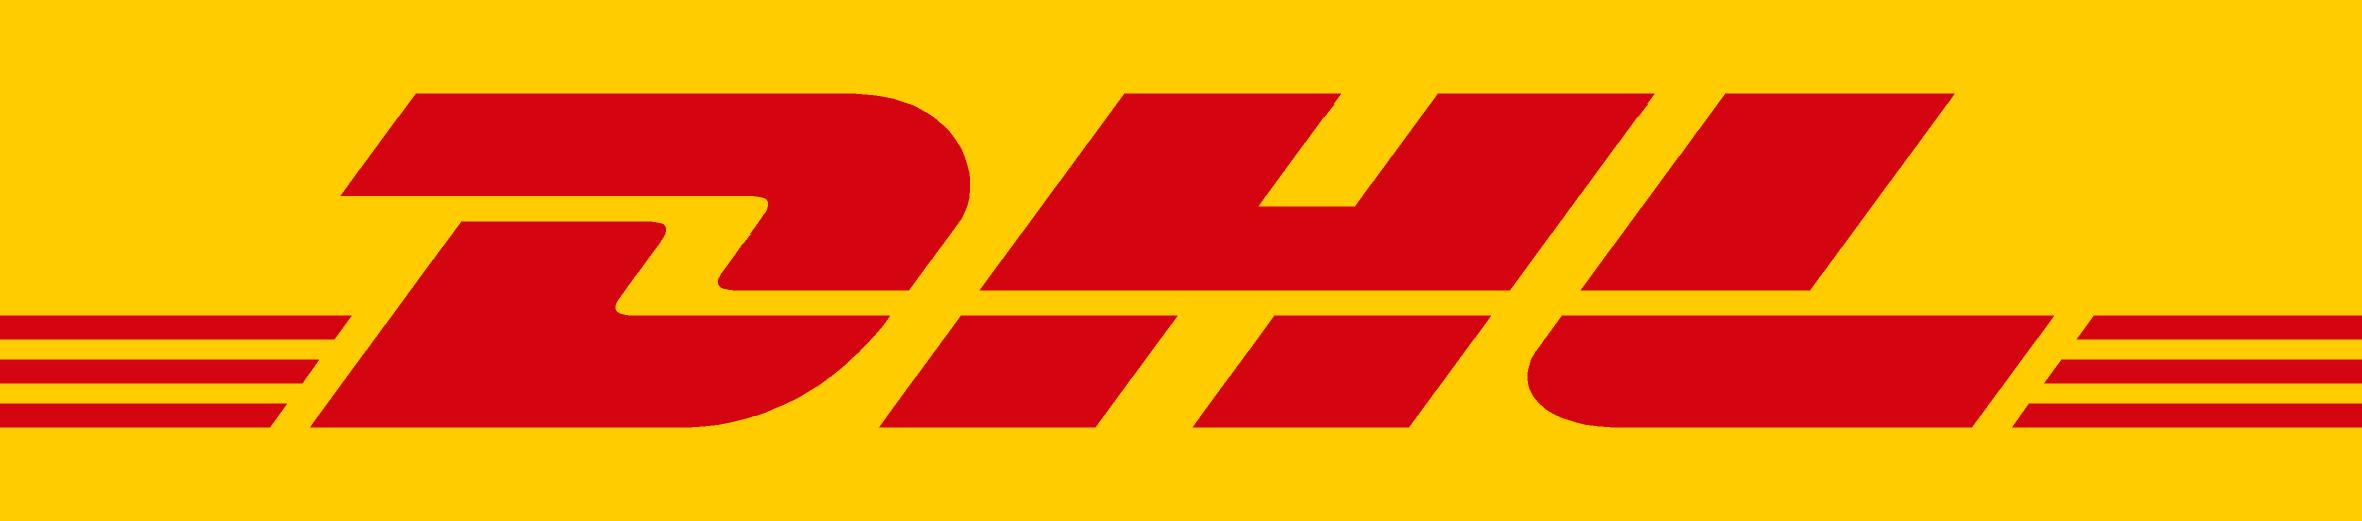 DHL Express certified as Top Employer 2015 in Africa